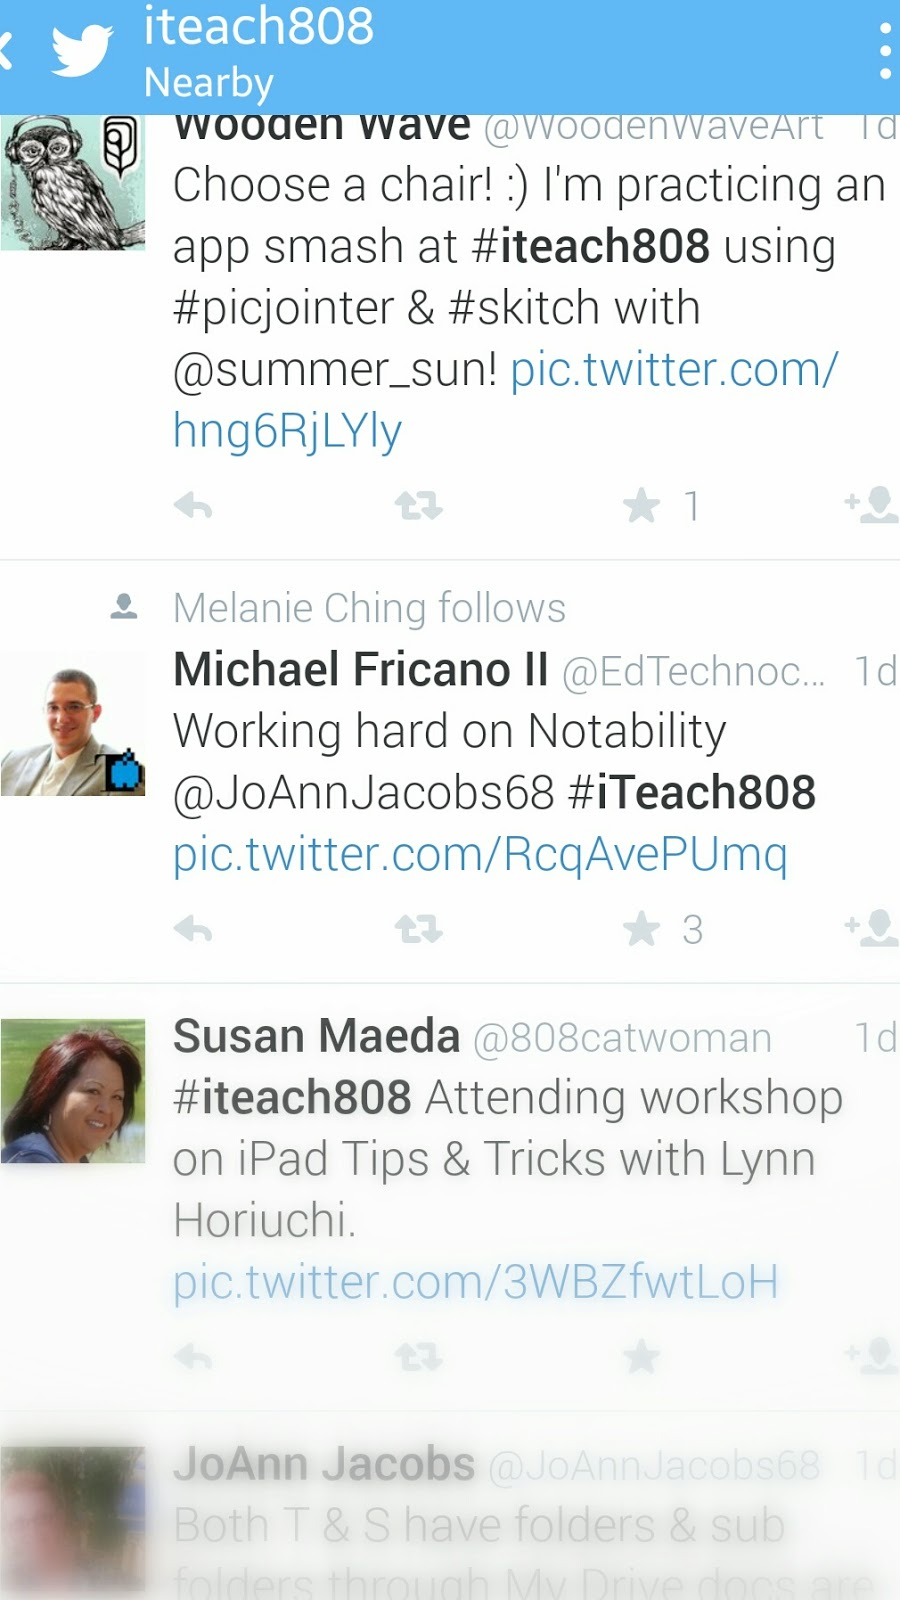 #iTeach808 Twitter Stream